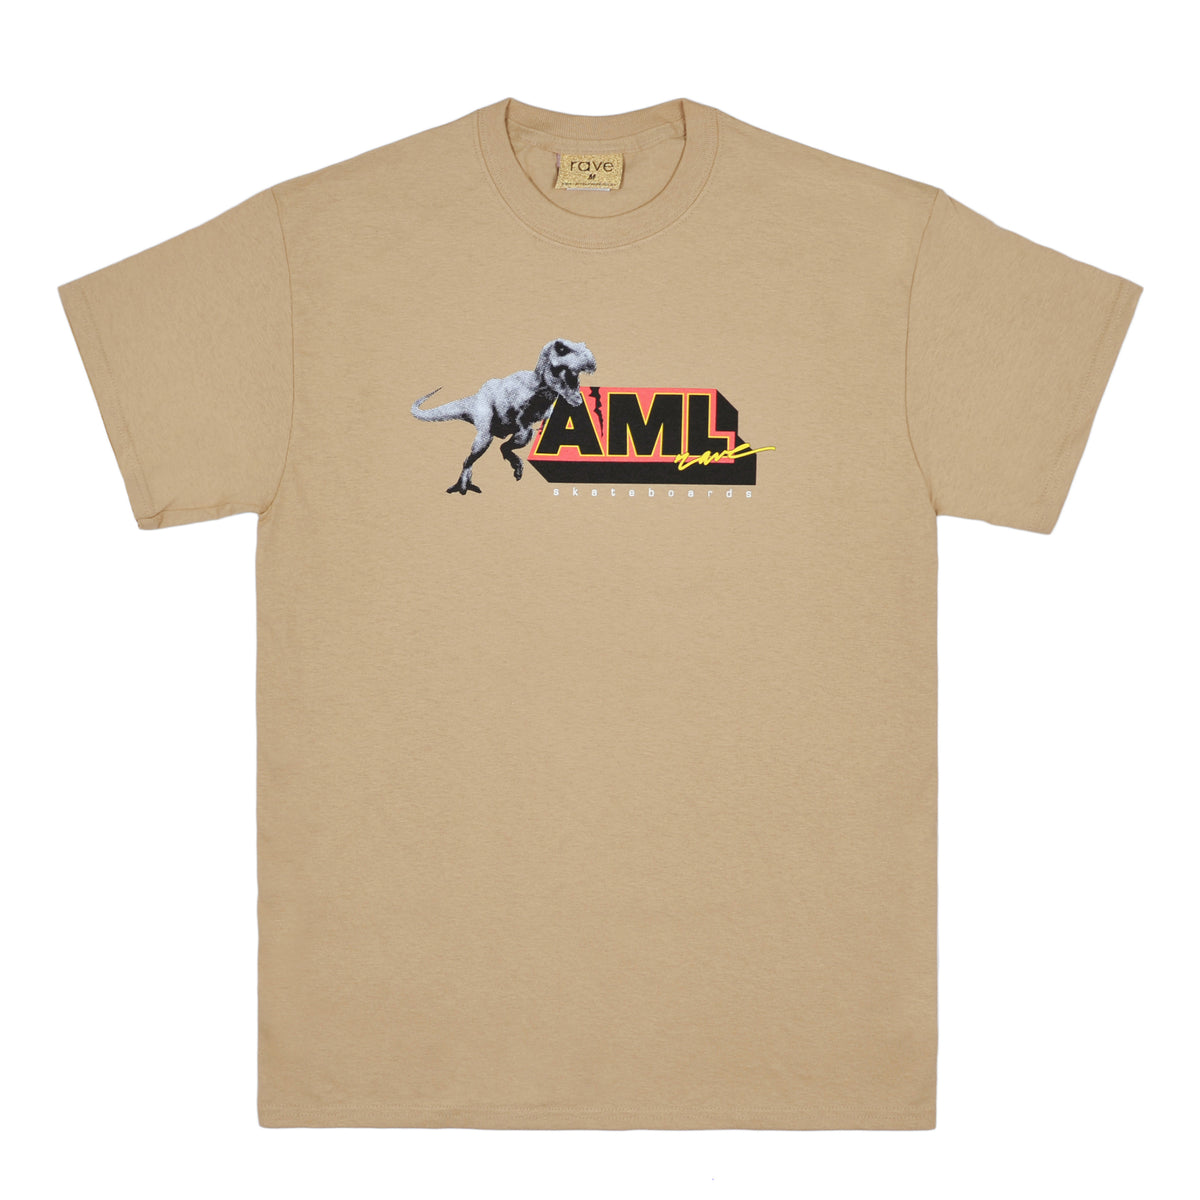 AML sand tee - RAVE skateboards